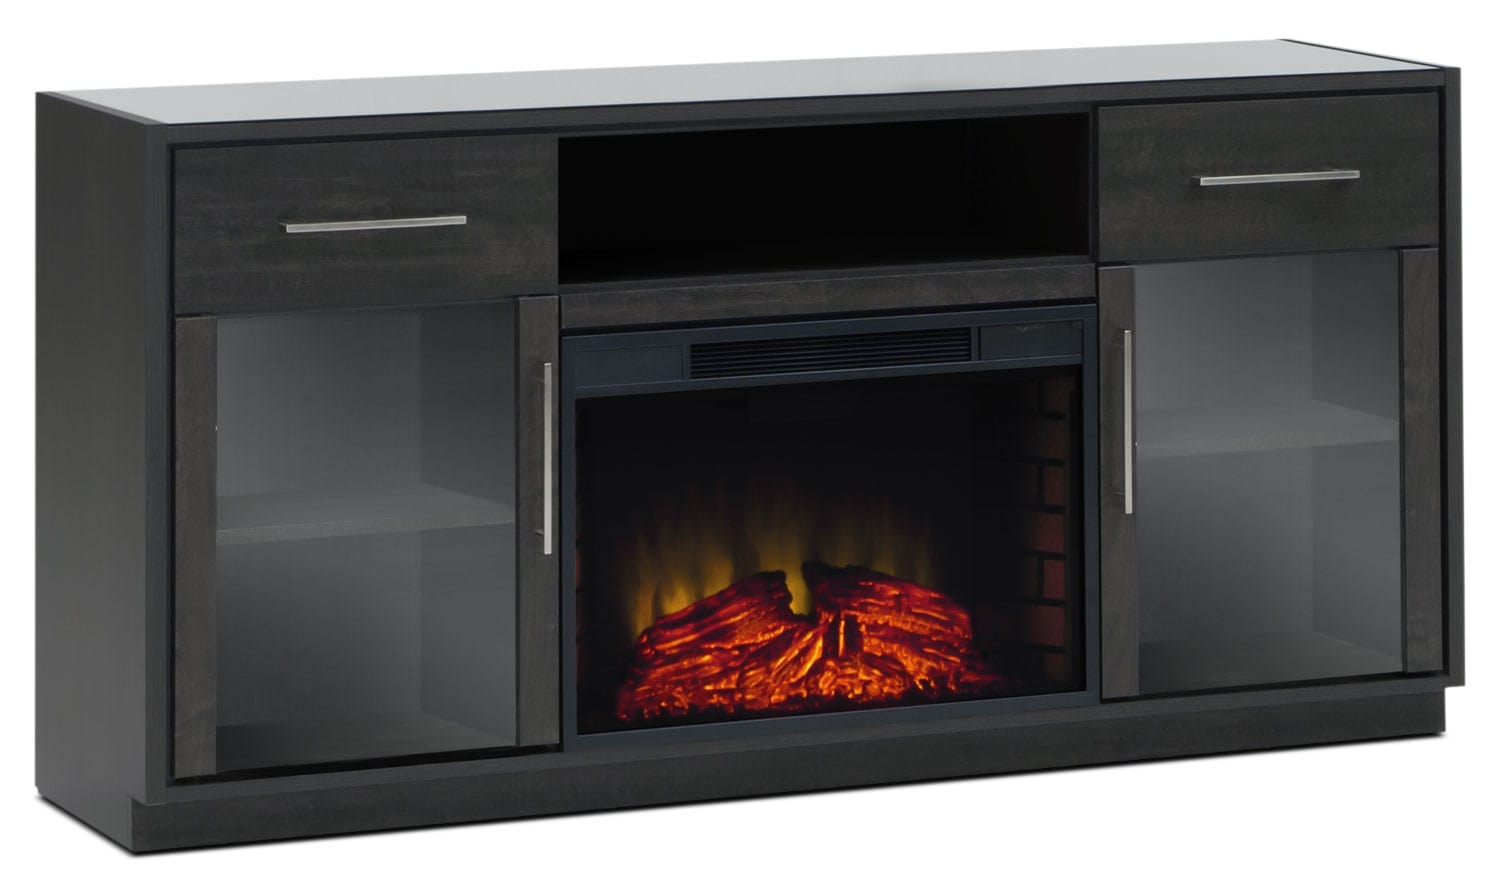 "Modena 68"" TV Stand with Log Firebox"